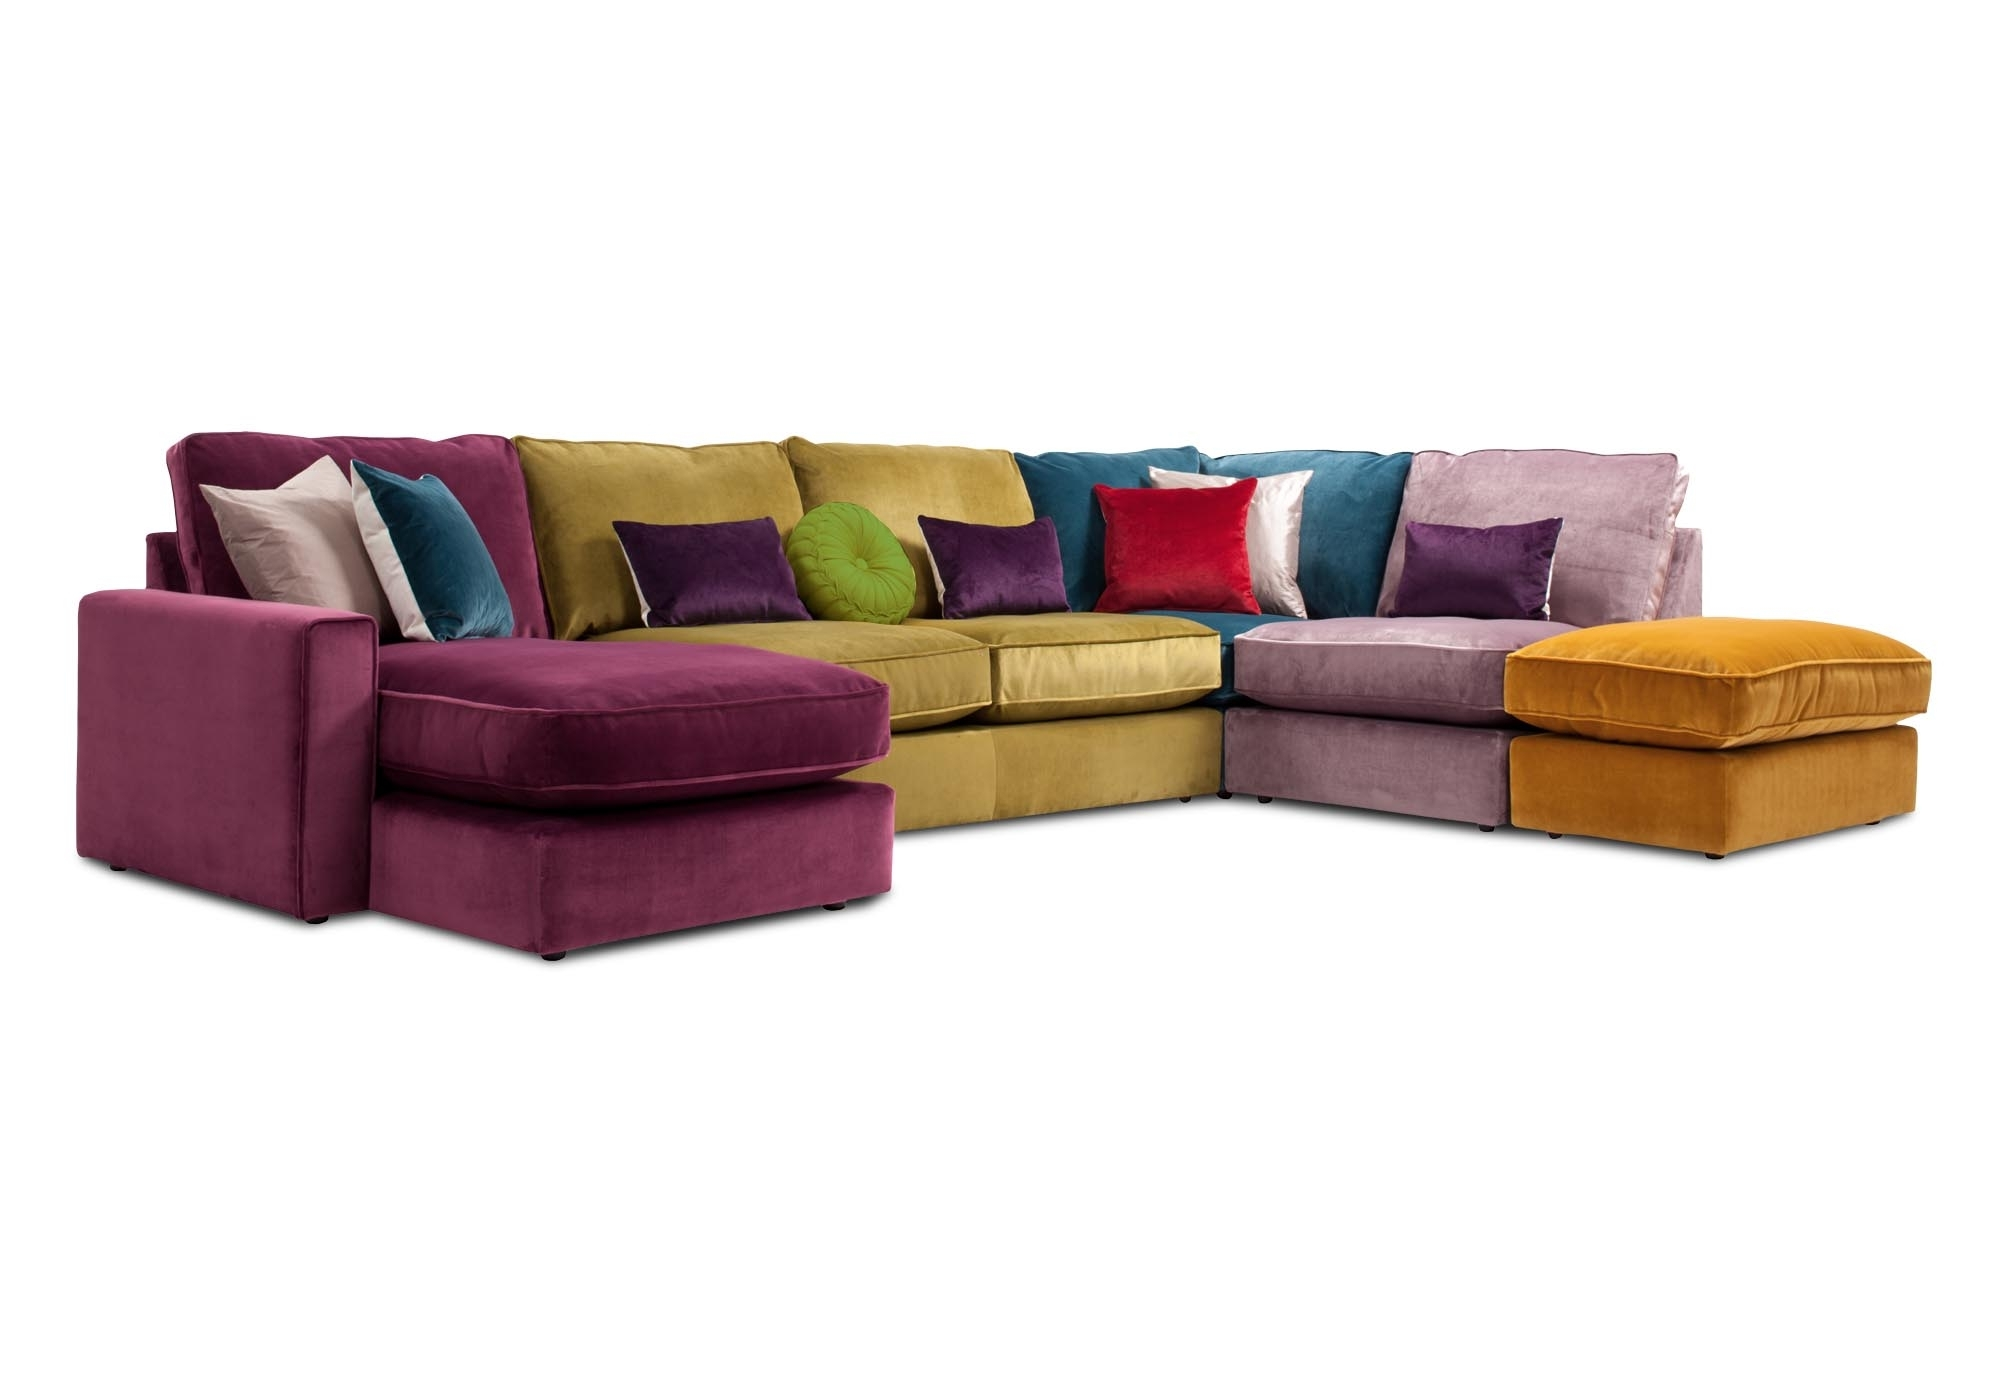 fable corner sofa furniture village leather dye chairs ideas